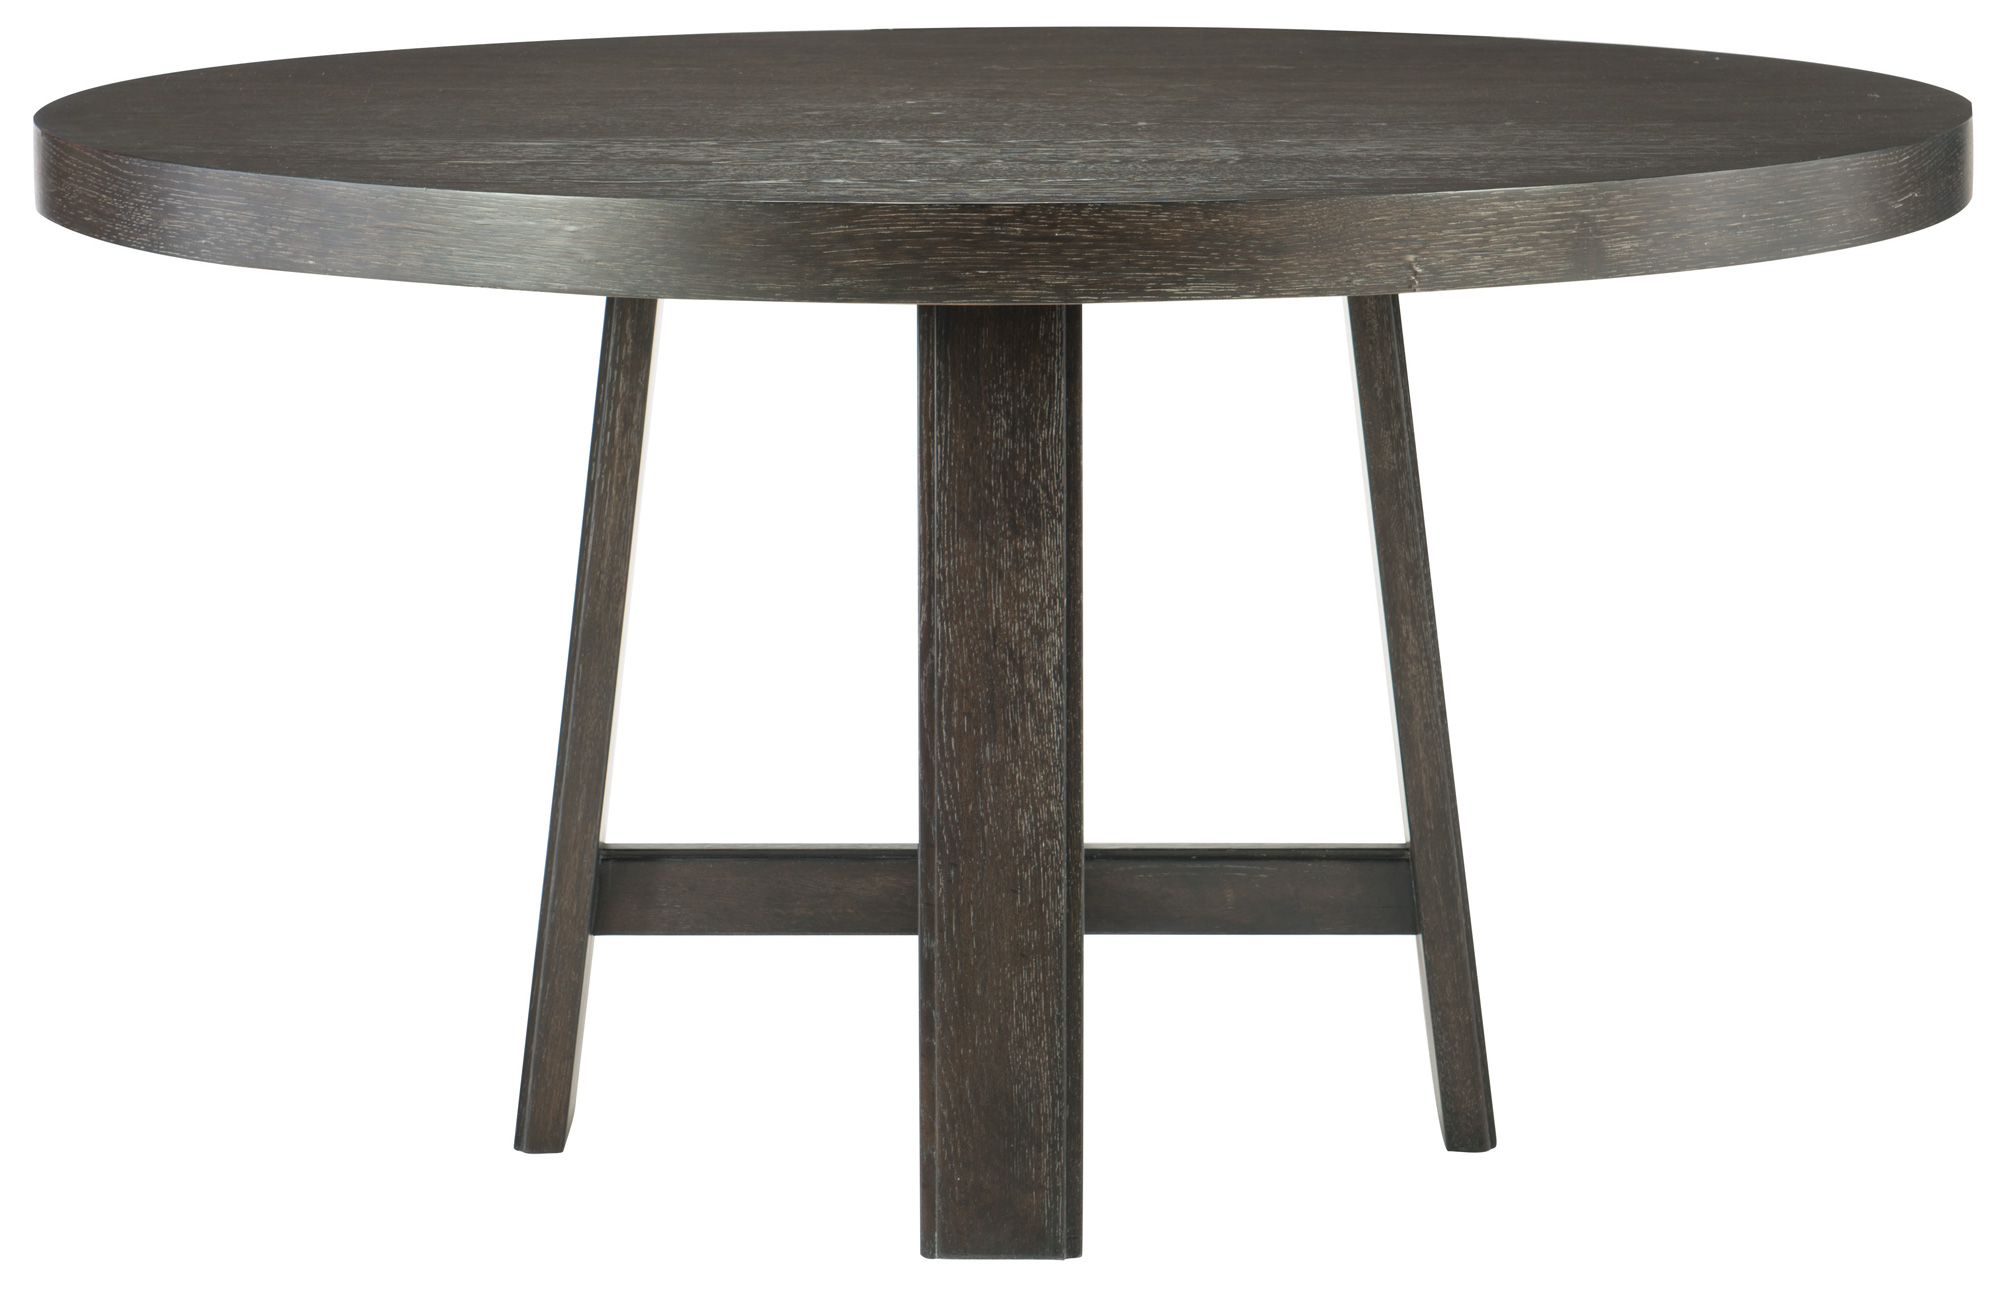 54 round dining table Round Dining Table (54